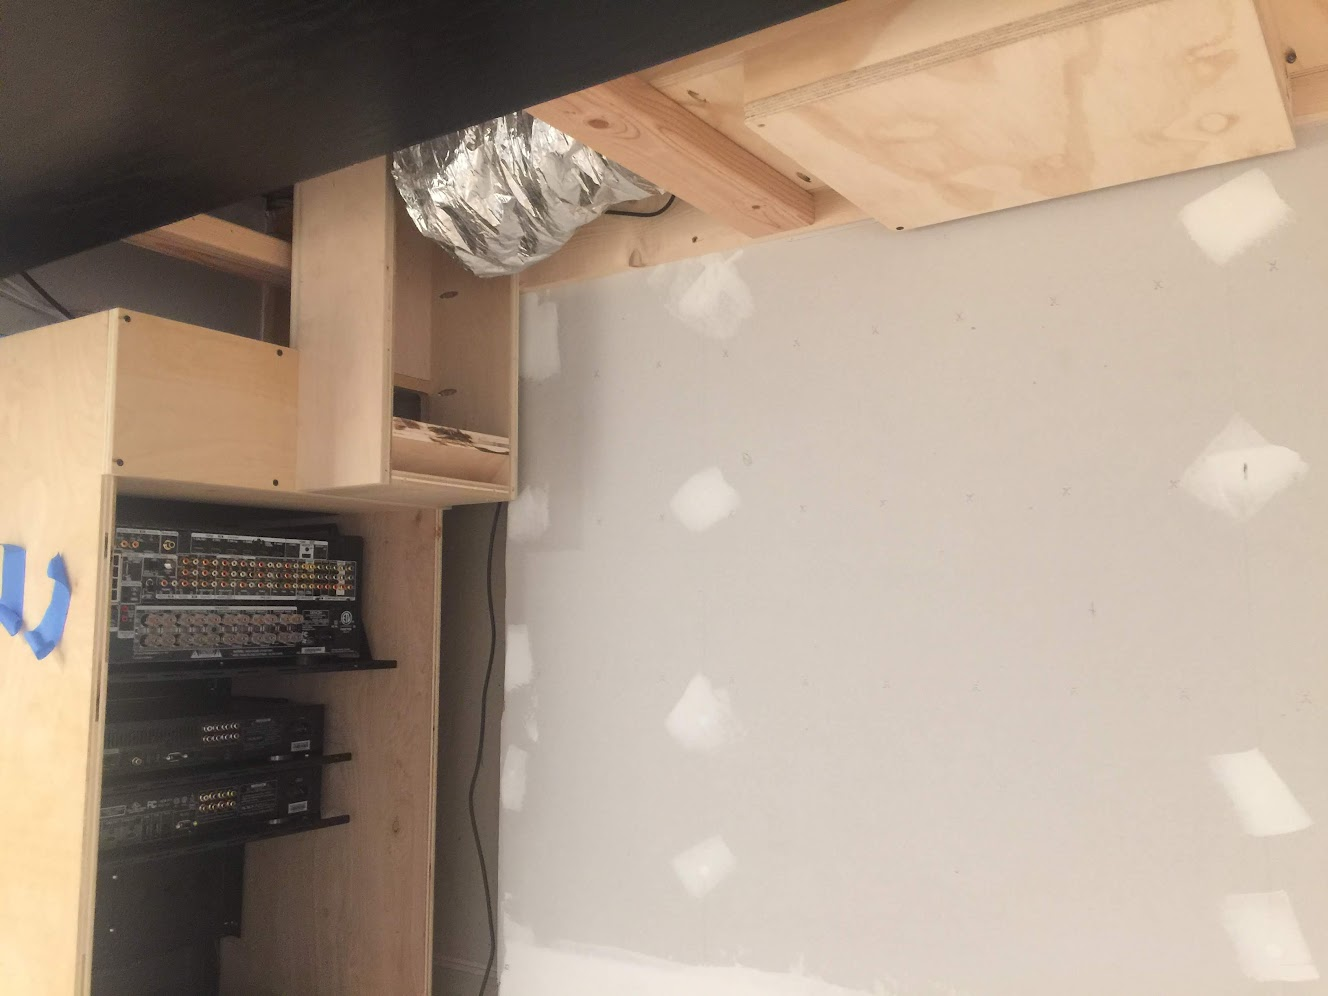 AC vent location help - AVS Forum | Home Theater Discussions